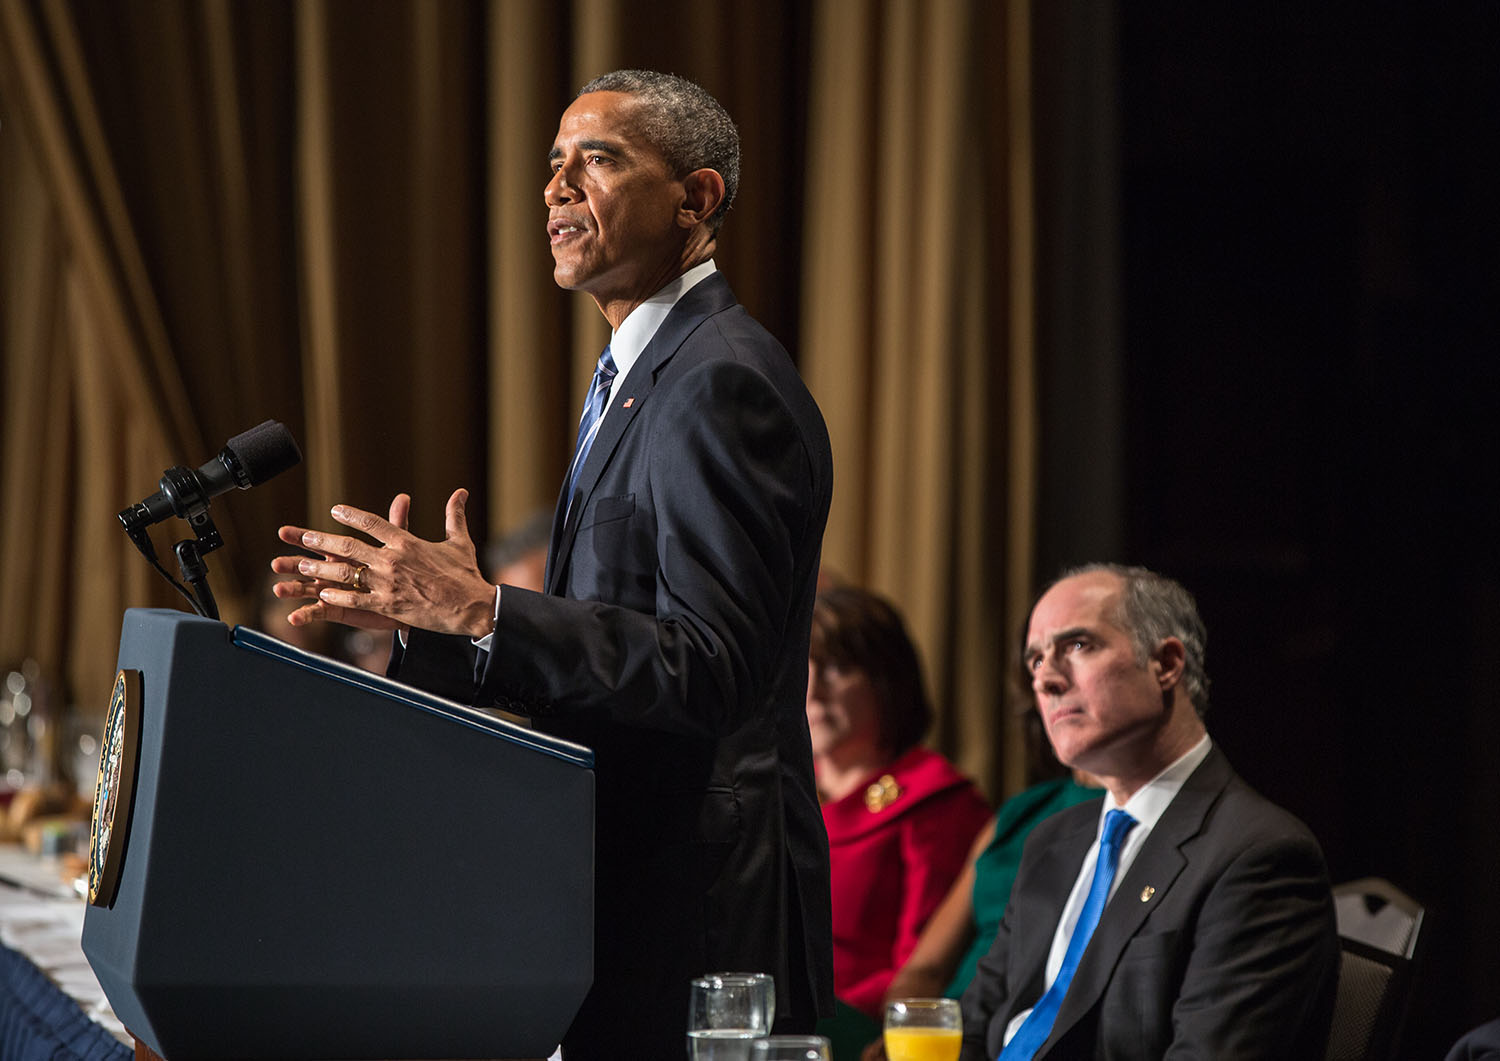 President Obama delivers remarks during the National Prayer Breakfast, Feb. 5, 2015